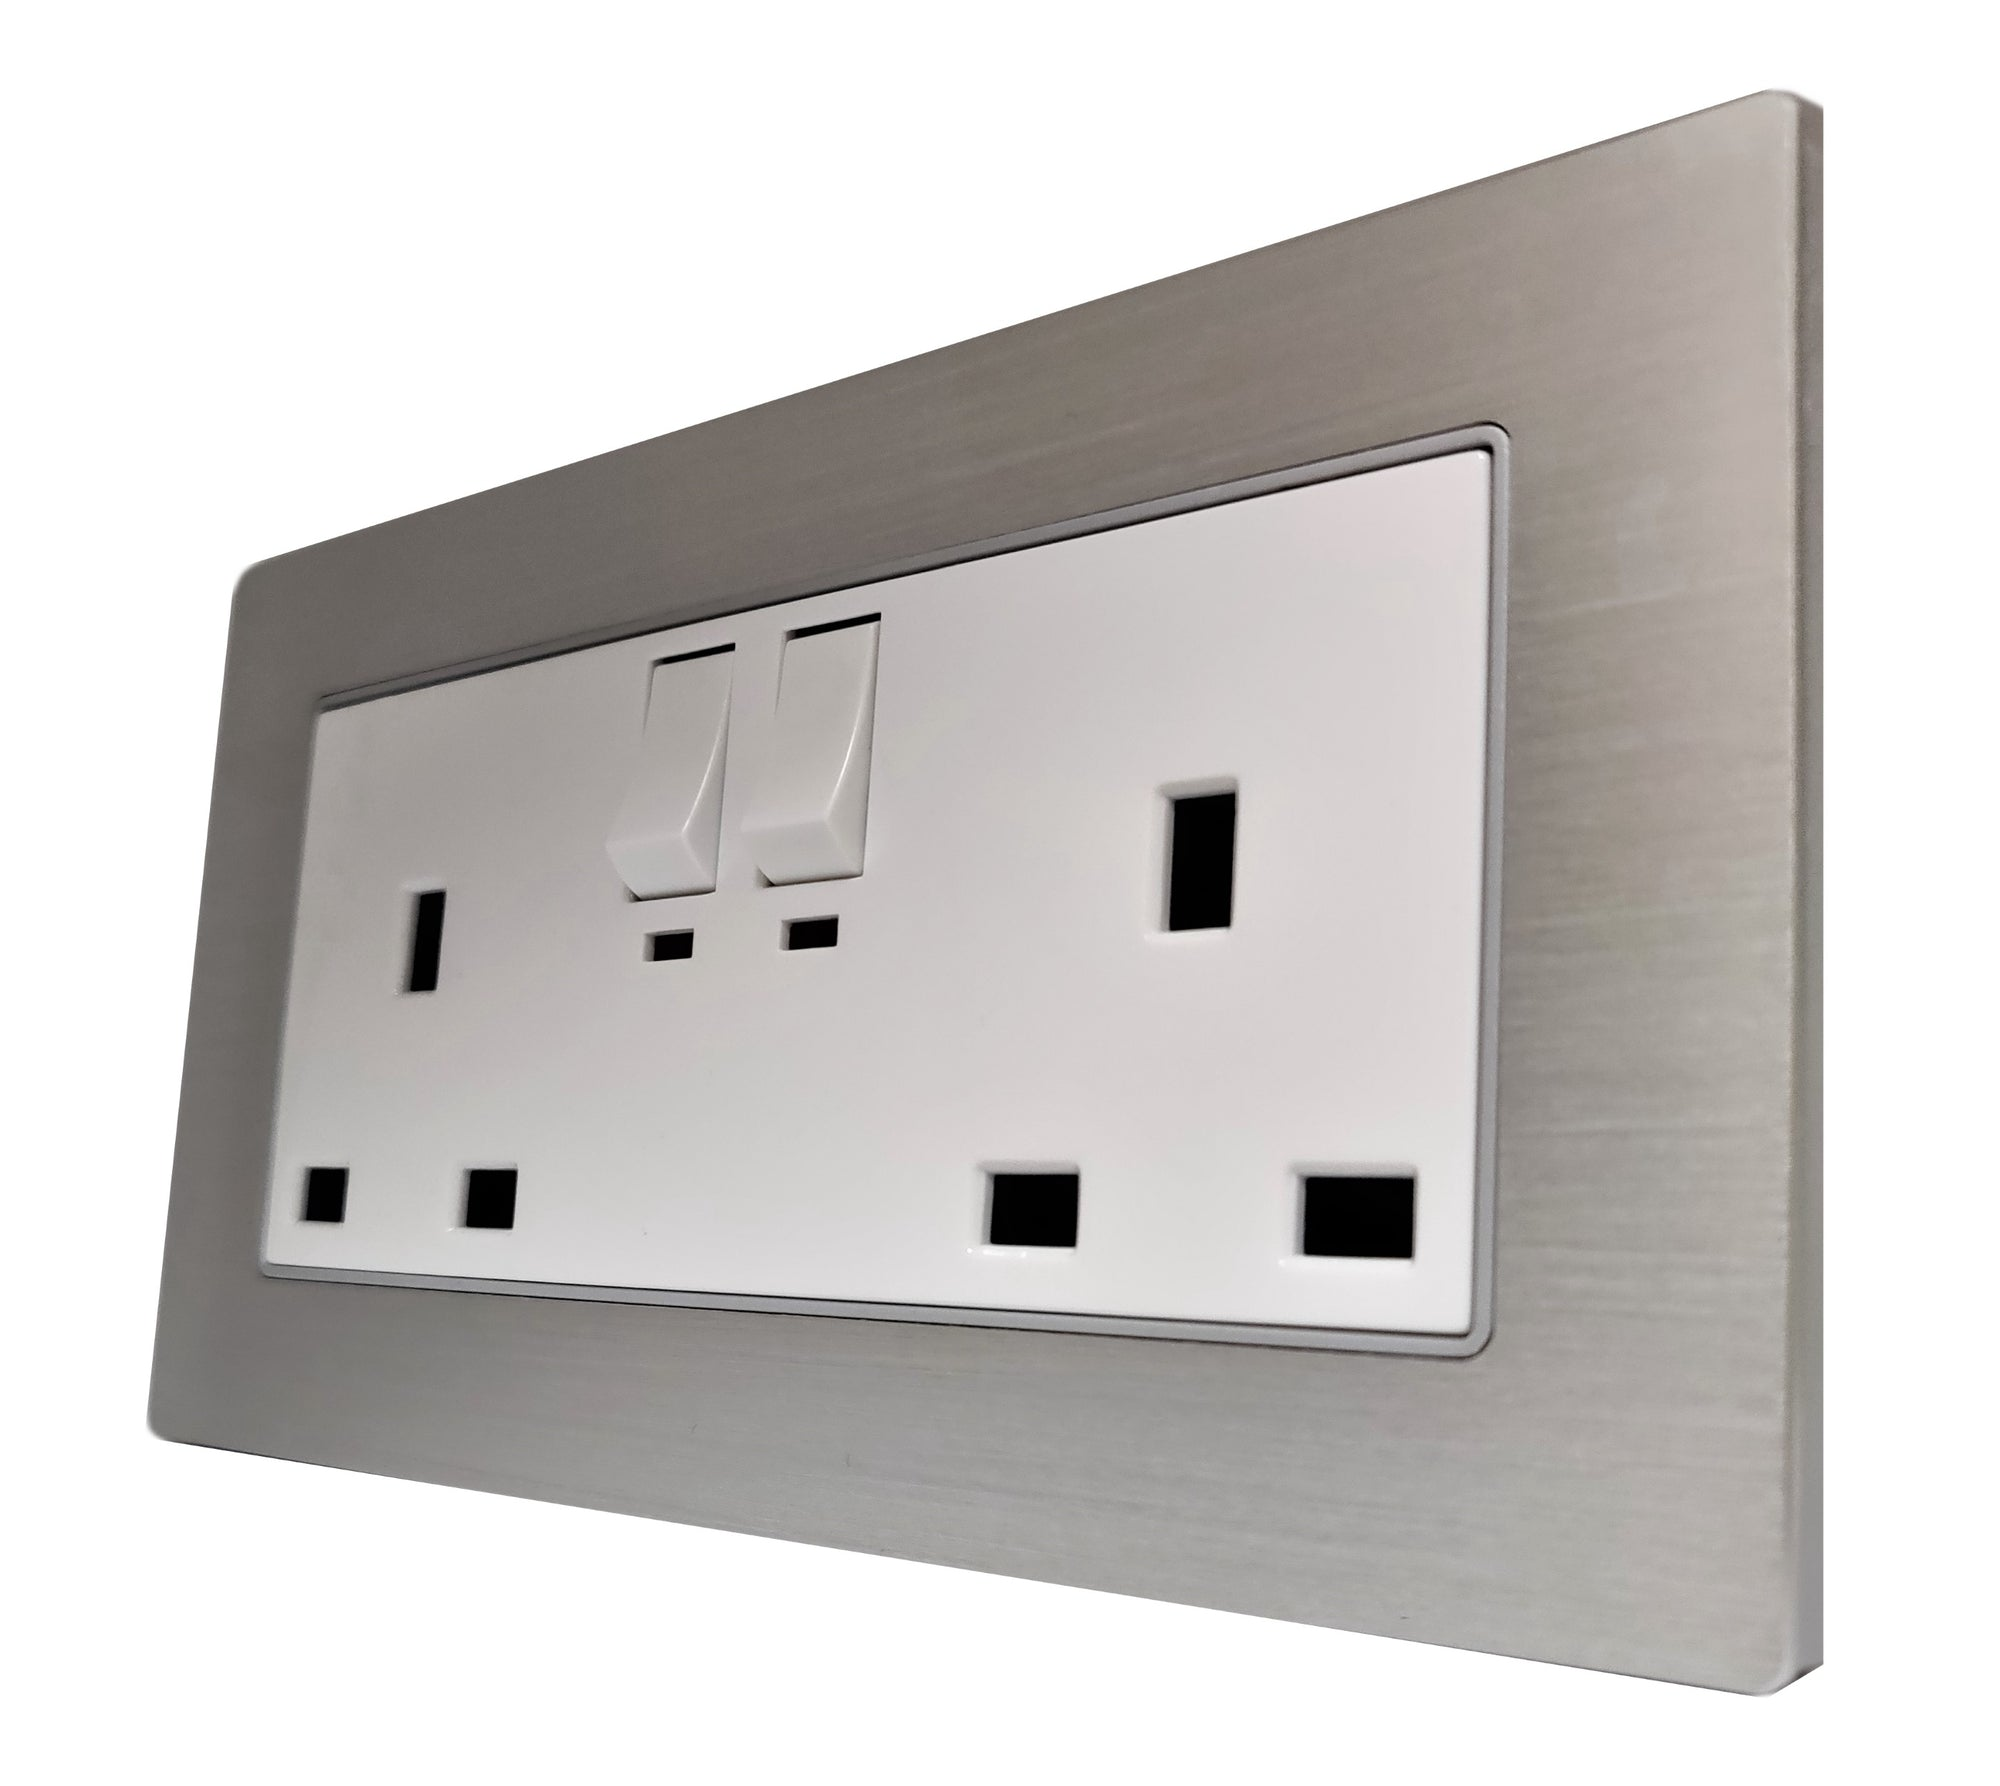 Double UK 13A 3-Pin AC Wall Power Socket in  Silver Brushed Alum Frame & White Centre